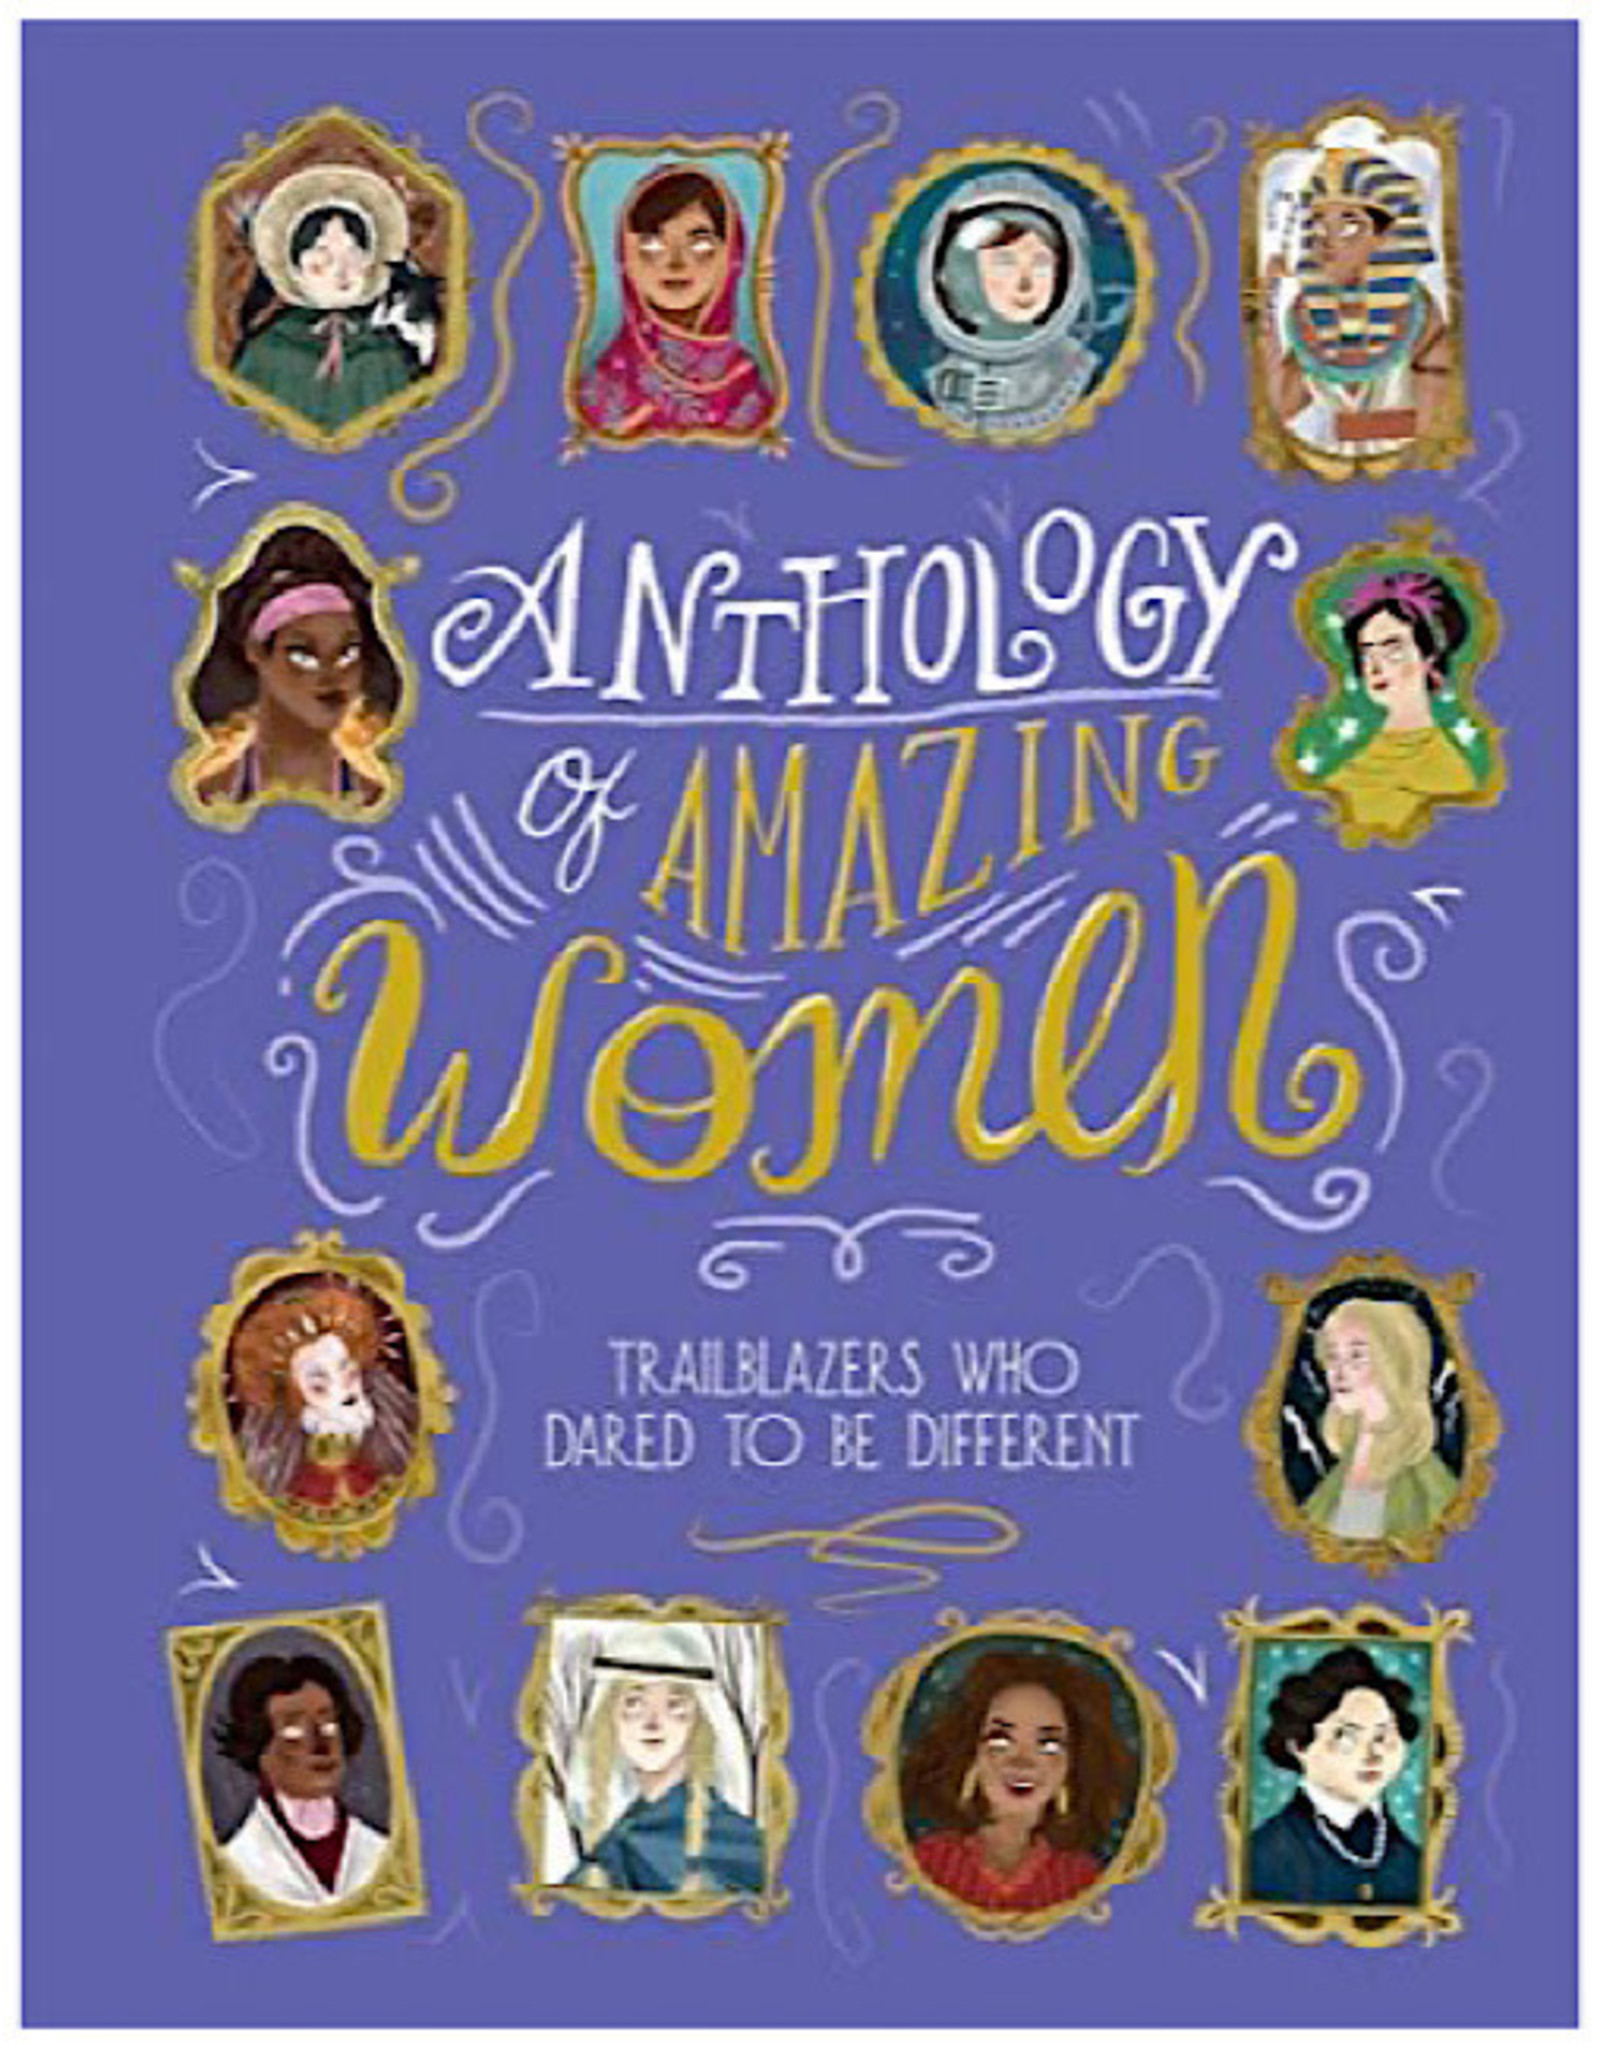 Book - Anthology of Amazing Women